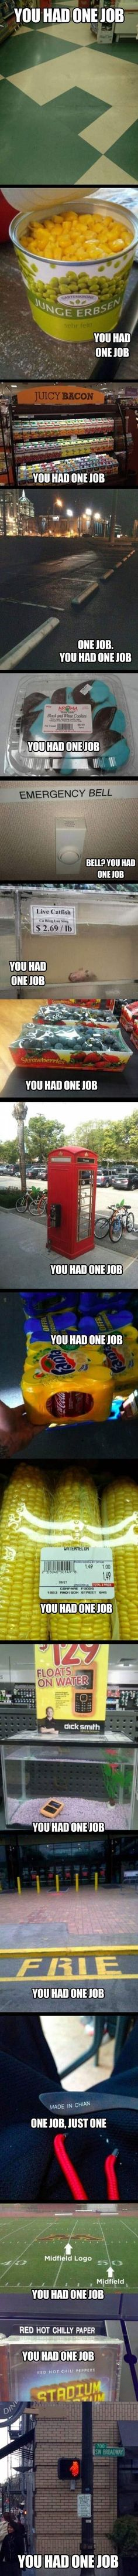 You Had One Job (Compilation) | Click the link to view full image and description : )